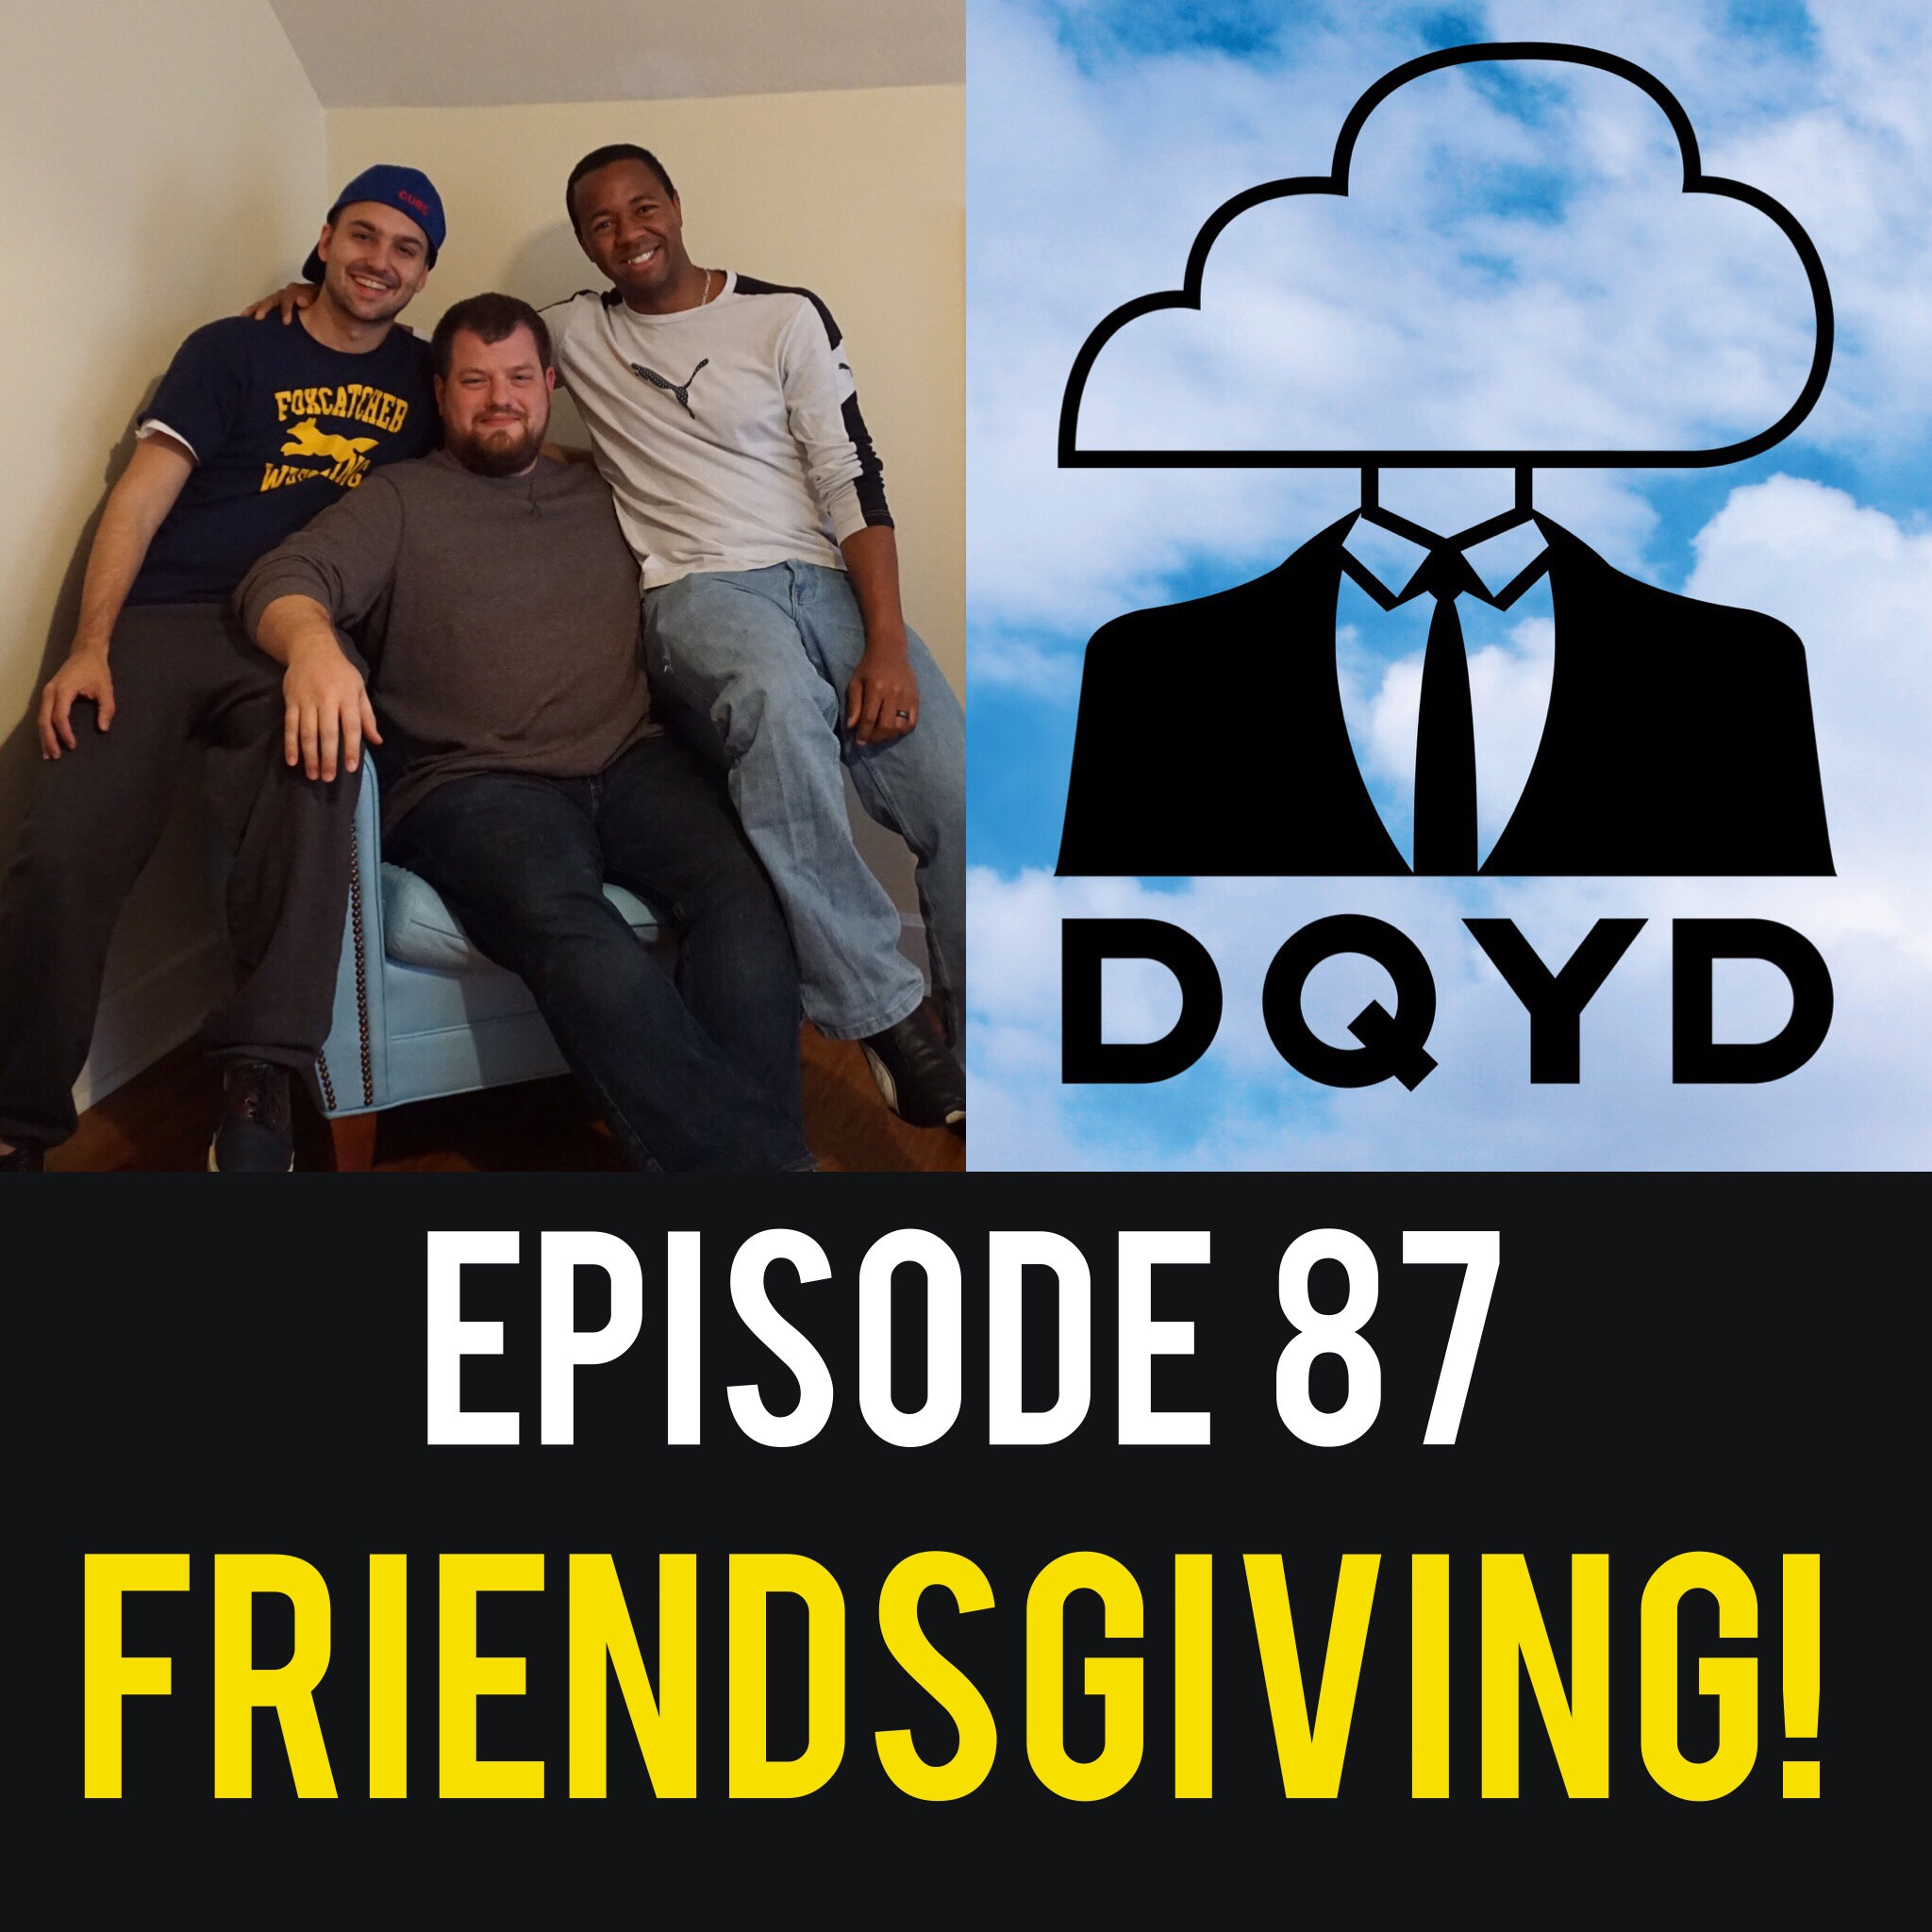 """Episode 87: Friendsgiving! Join us as we celebrate the holiday season and discuss the state of the podcast. It's been a ridiculously fun run and we break down our favorite (and least favorite) parts. Want to become part of the DQYD family and talk about your passions? Email us at  dqydpodcast@gmail.com   Song of the week is """"The Art of Holding an Umbrella"""" by Andy Jones. Download his wonderful album """"Sunflower"""" now! https://musicbyandyjones.bandcamp.com/"""